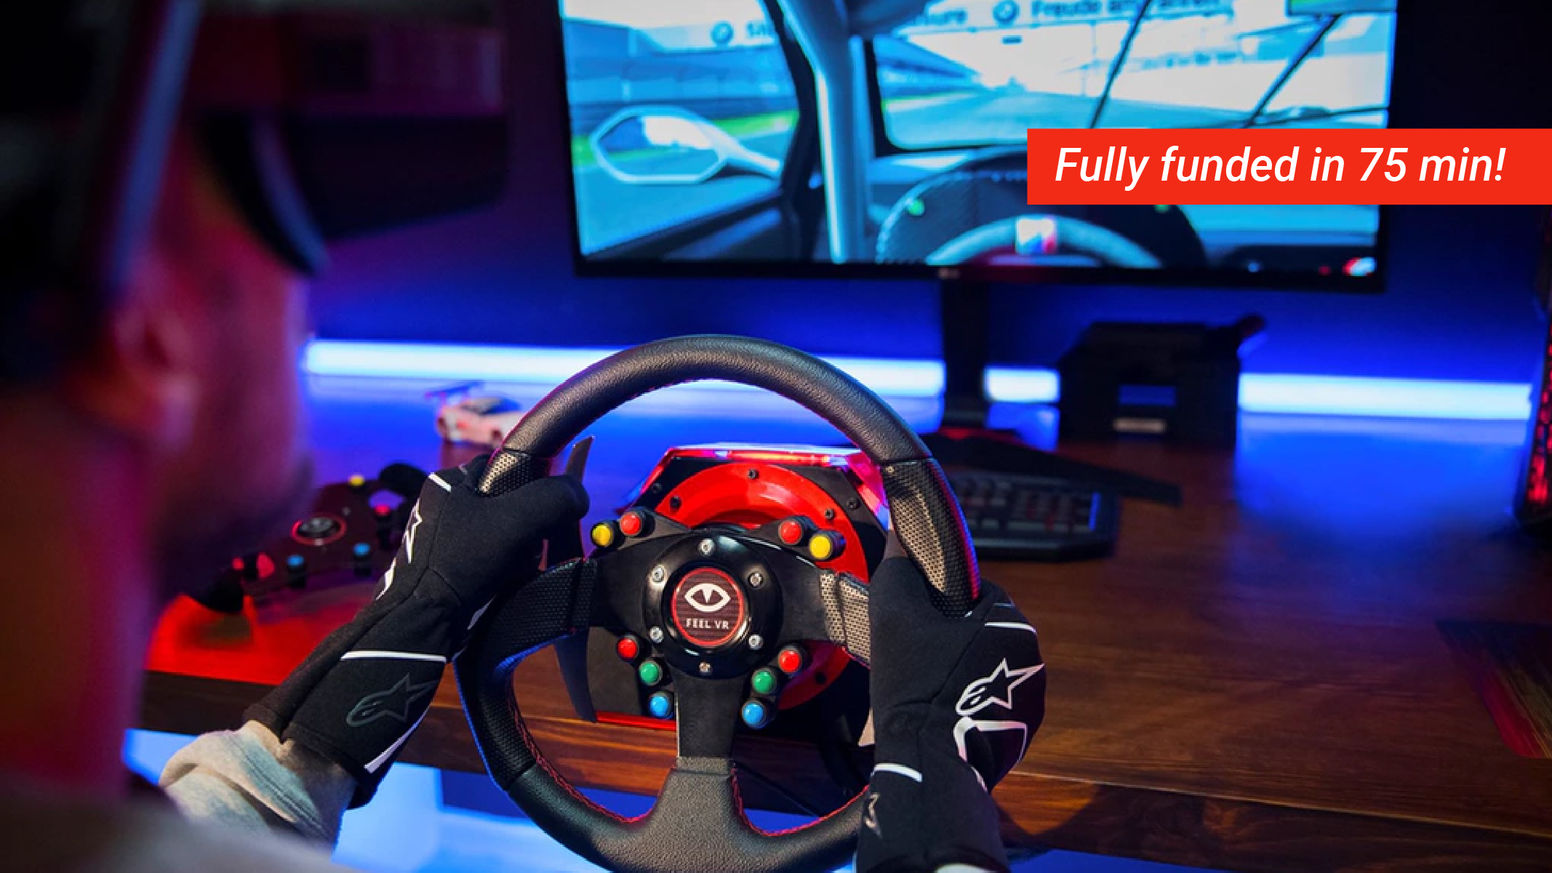 Feel Vr The Affordable Direct Drive Racing Wheel Pedals By Feel